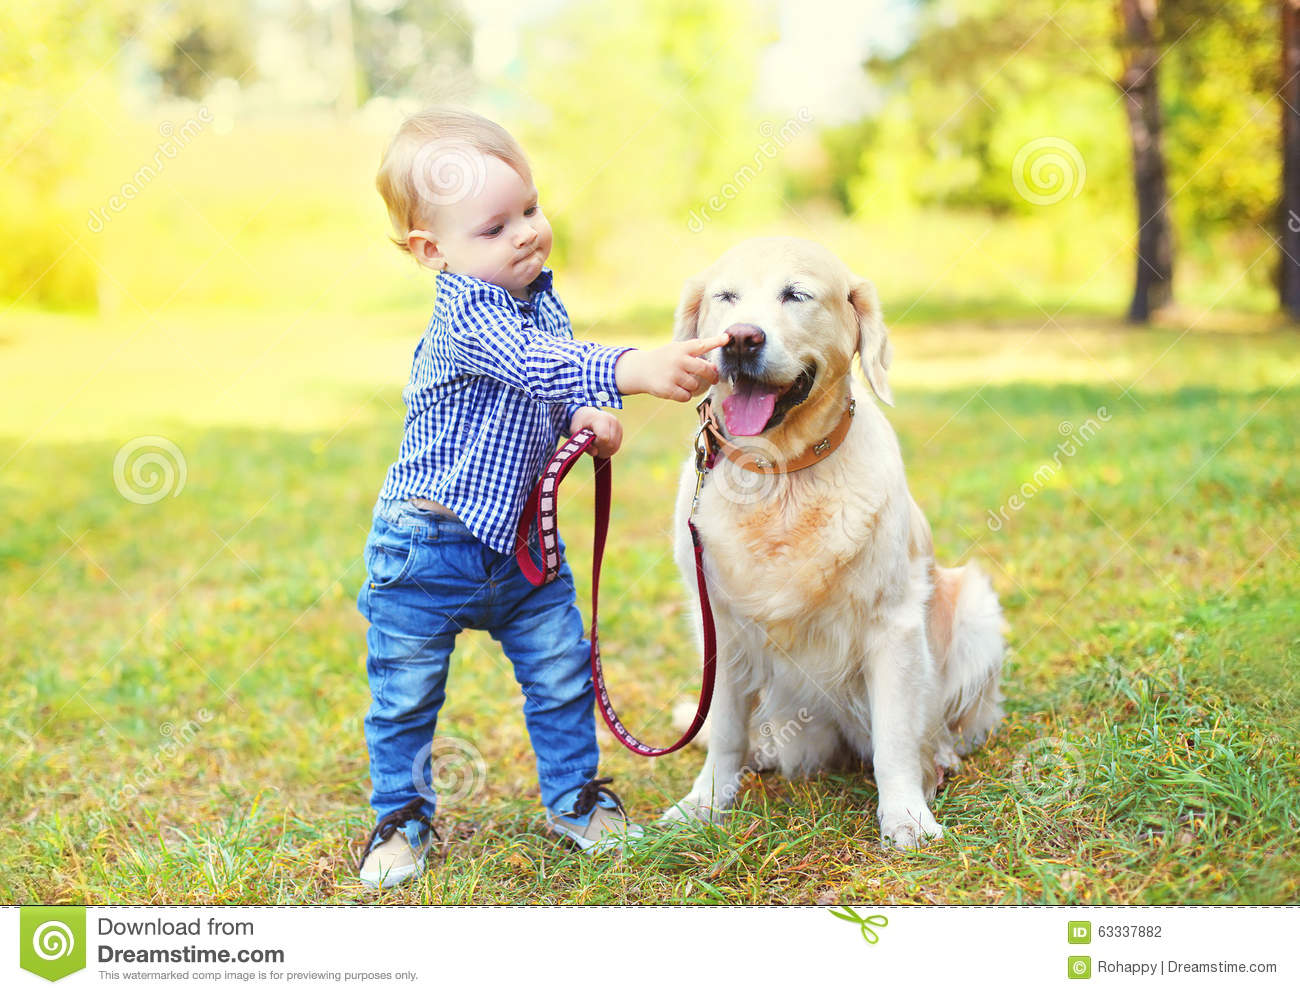 Little boy child playing with Golden Retriever dog on grass